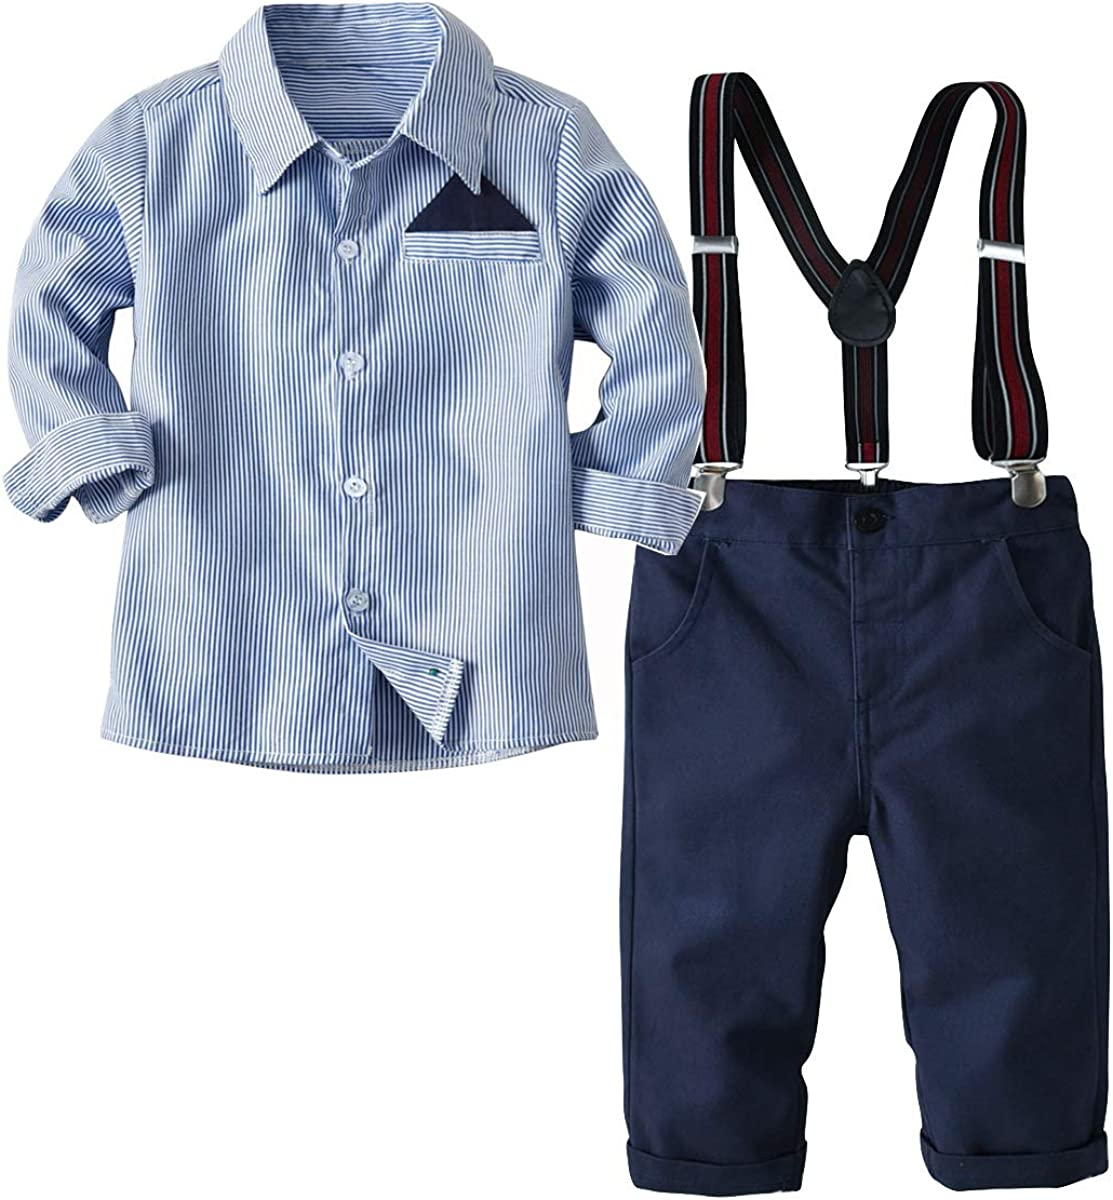 Boarnseorl Little Boys Long Sleeve Gentleman Outfit Suits Set